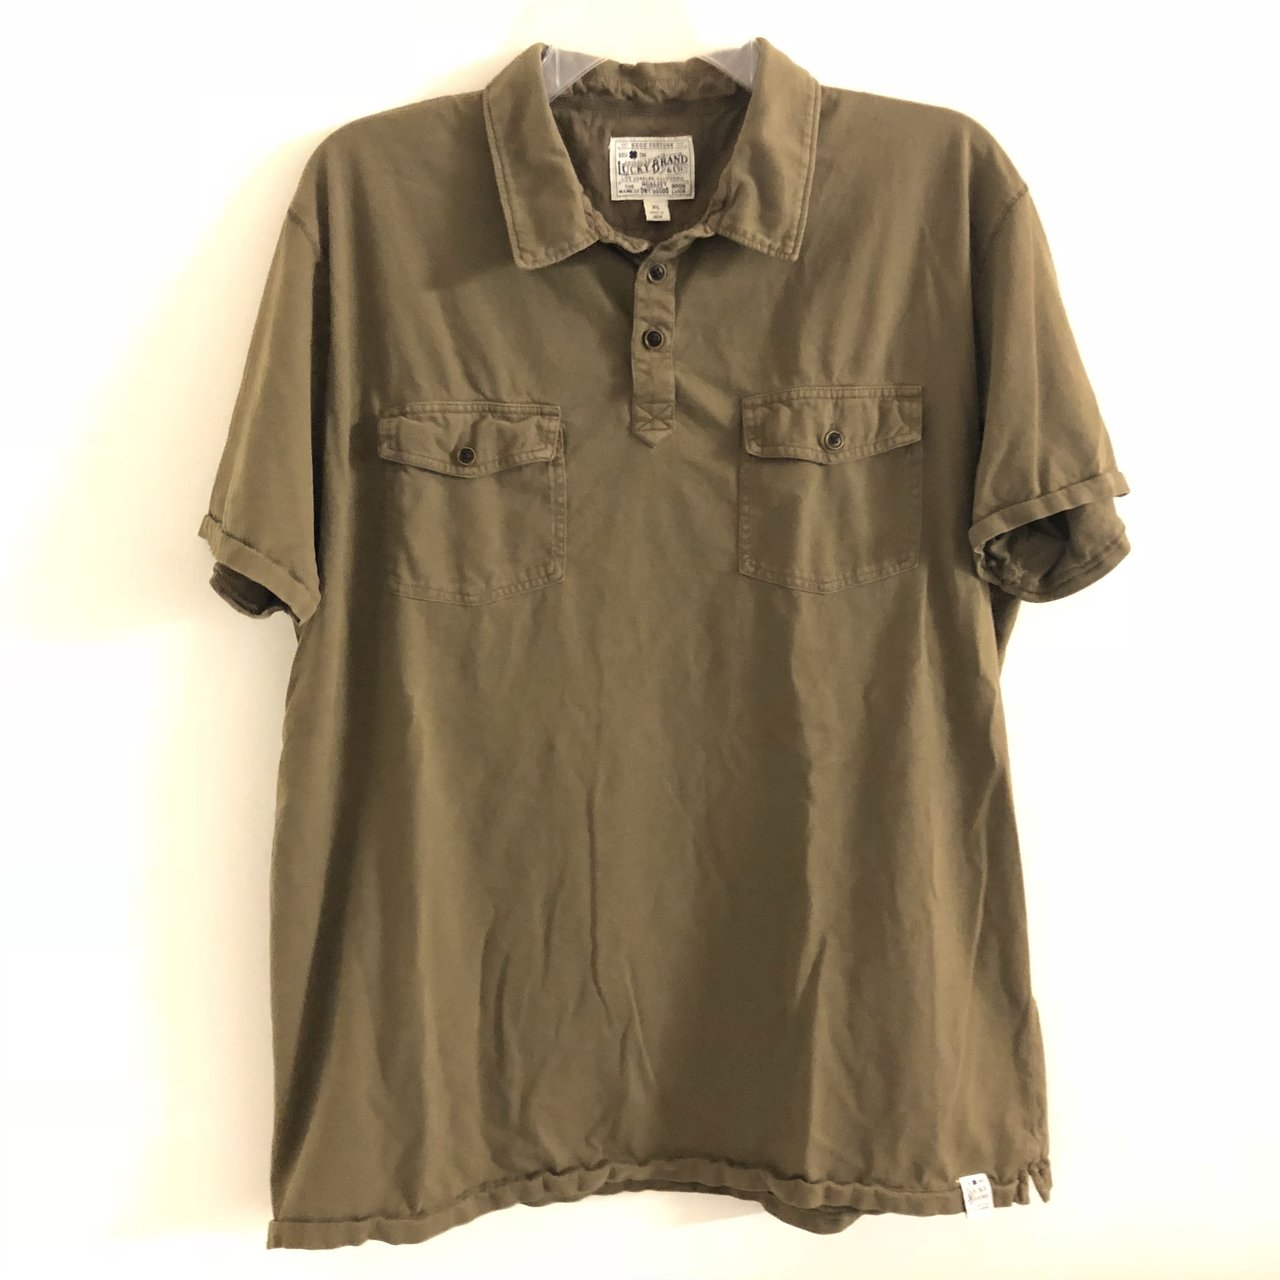 b786b6b79 Olive green polo by lucky